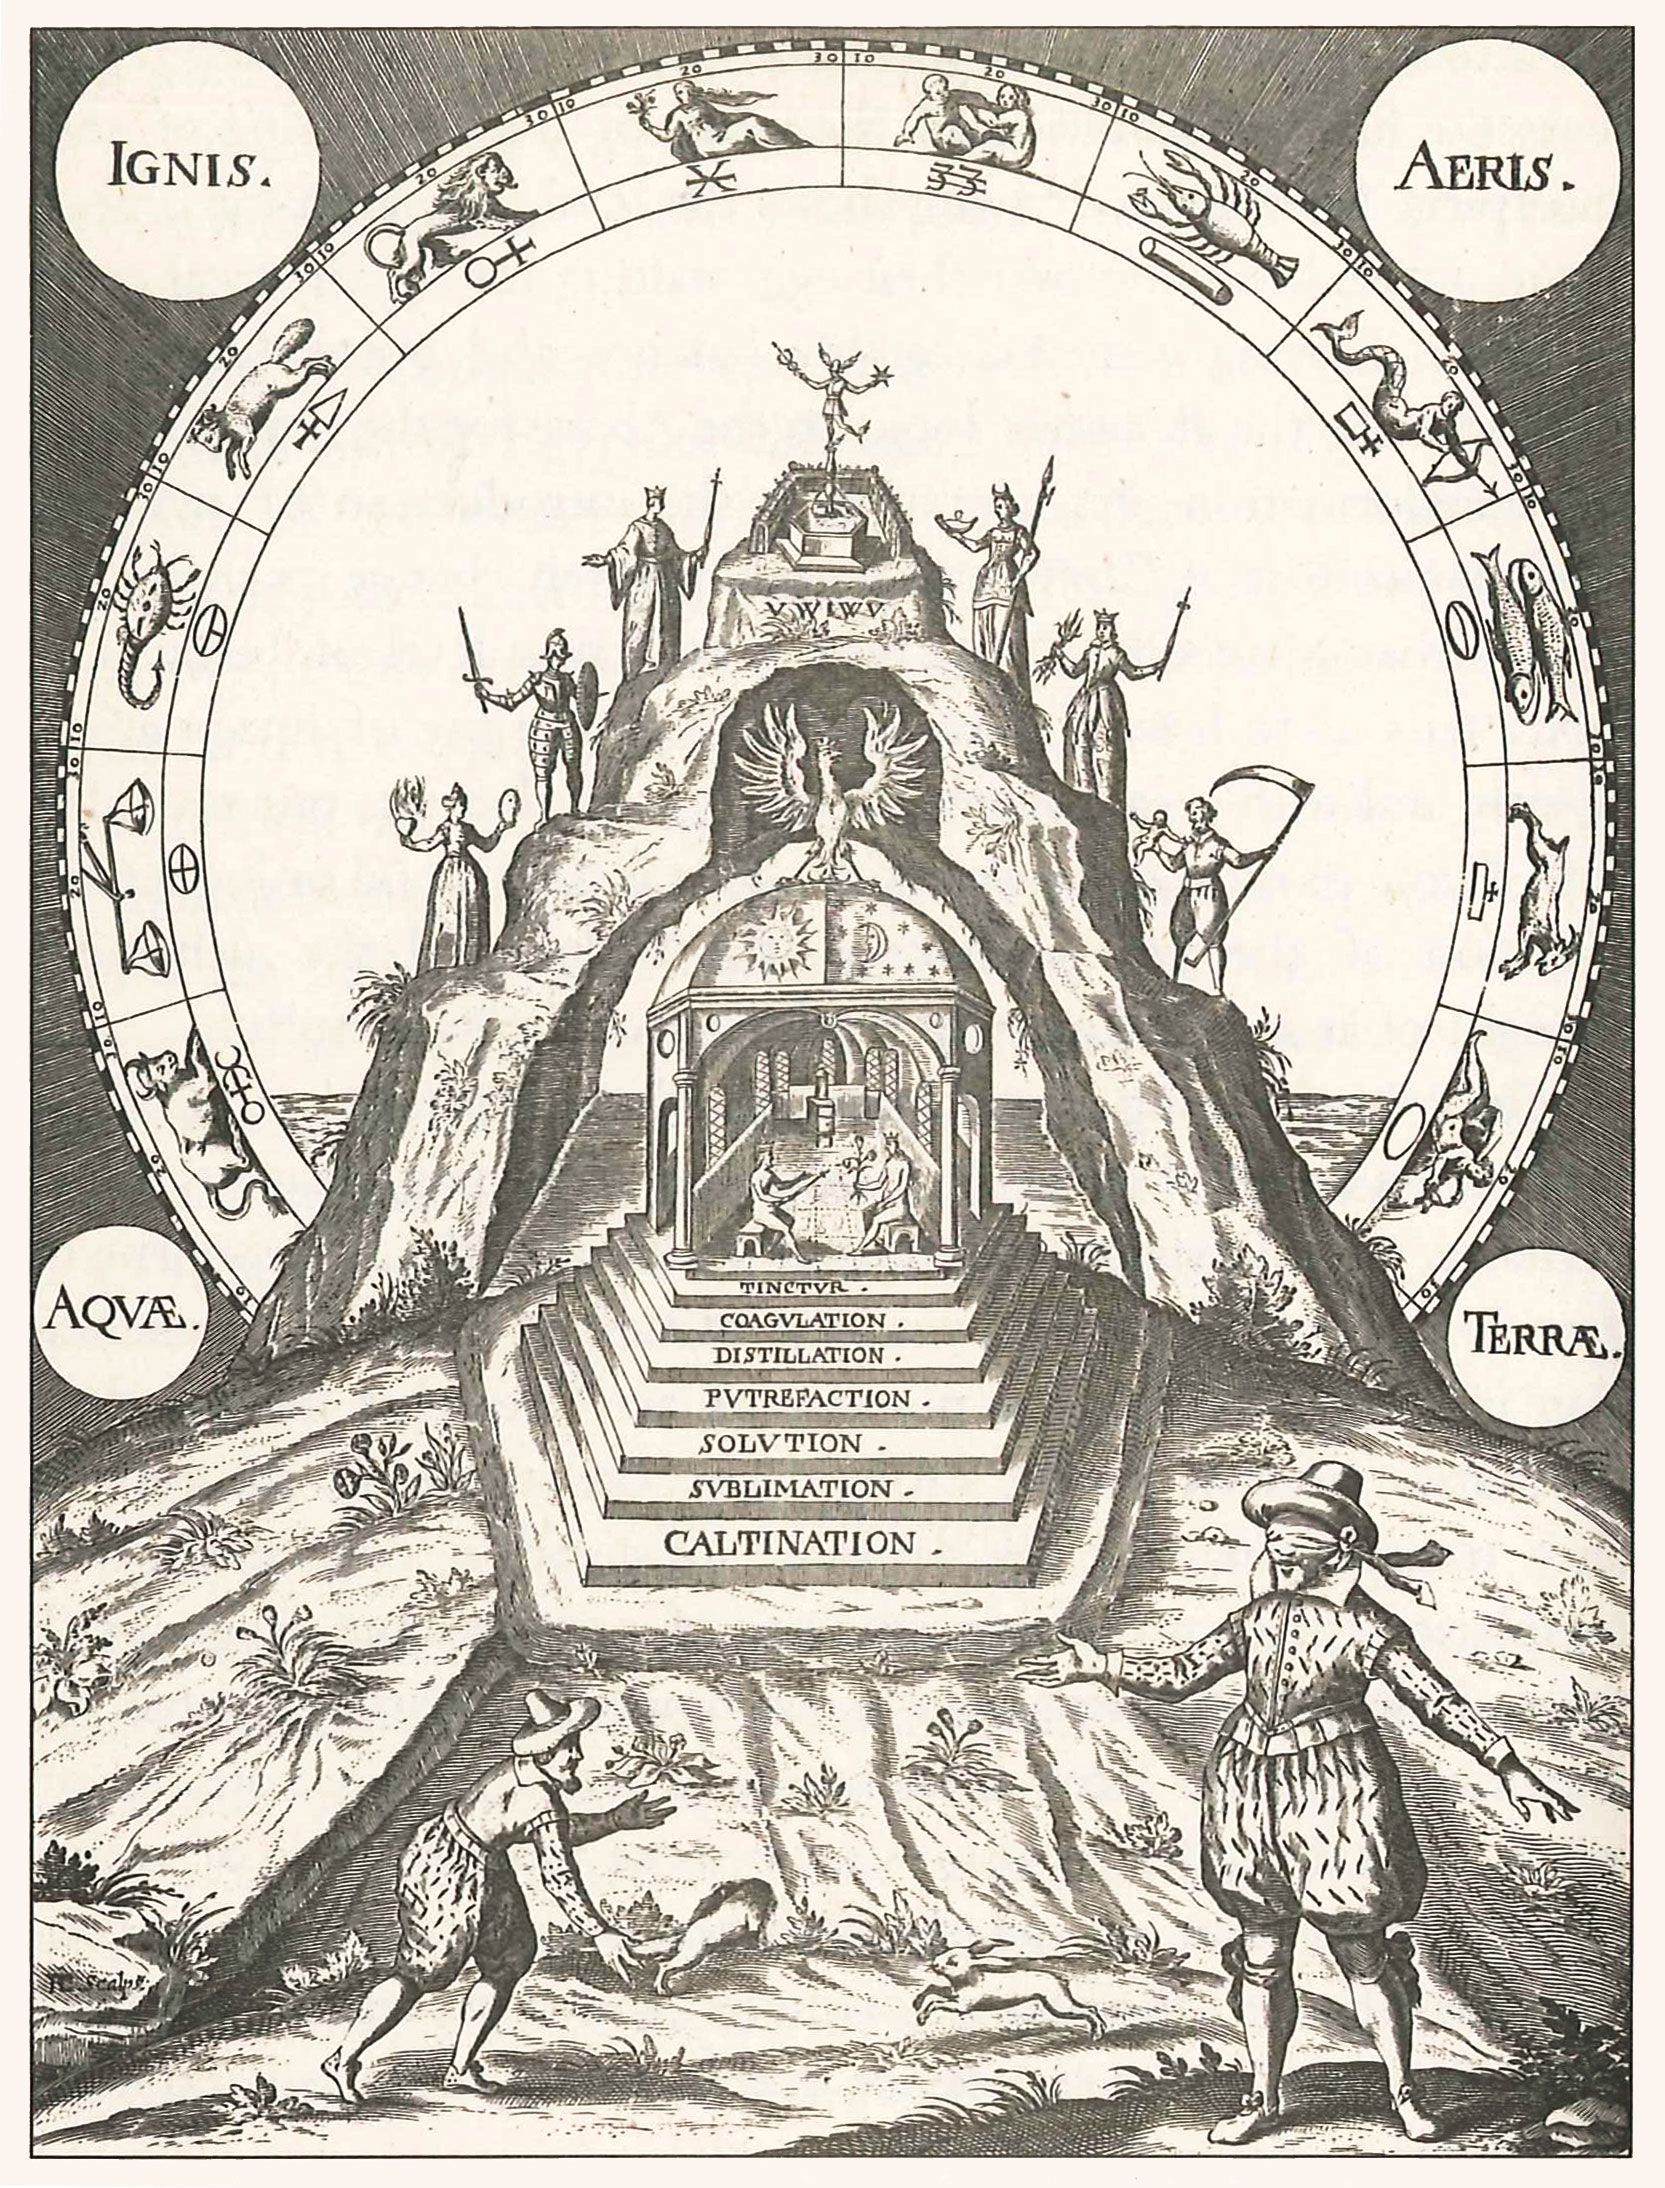 hight resolution of cave of the ancients stefan michelspacher 1616 diagram 3 from cabala spiegel der kunst und natur in alchymia kabbalah mirror of art and nature in